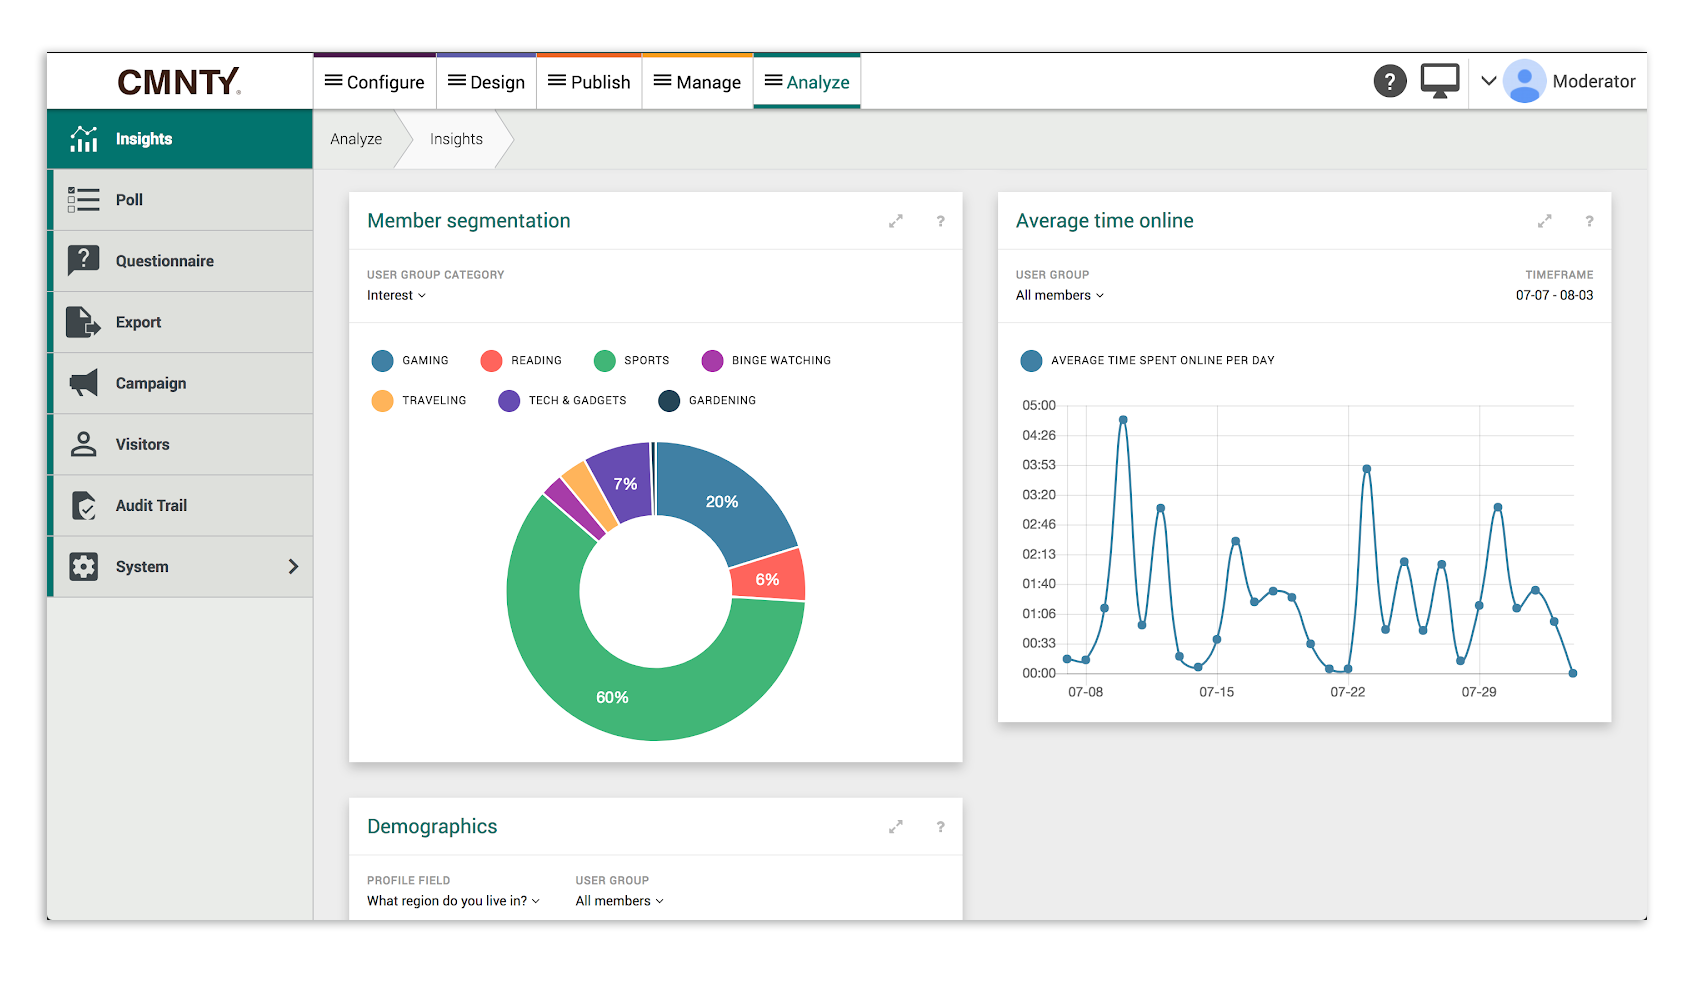 Community insights dashboard